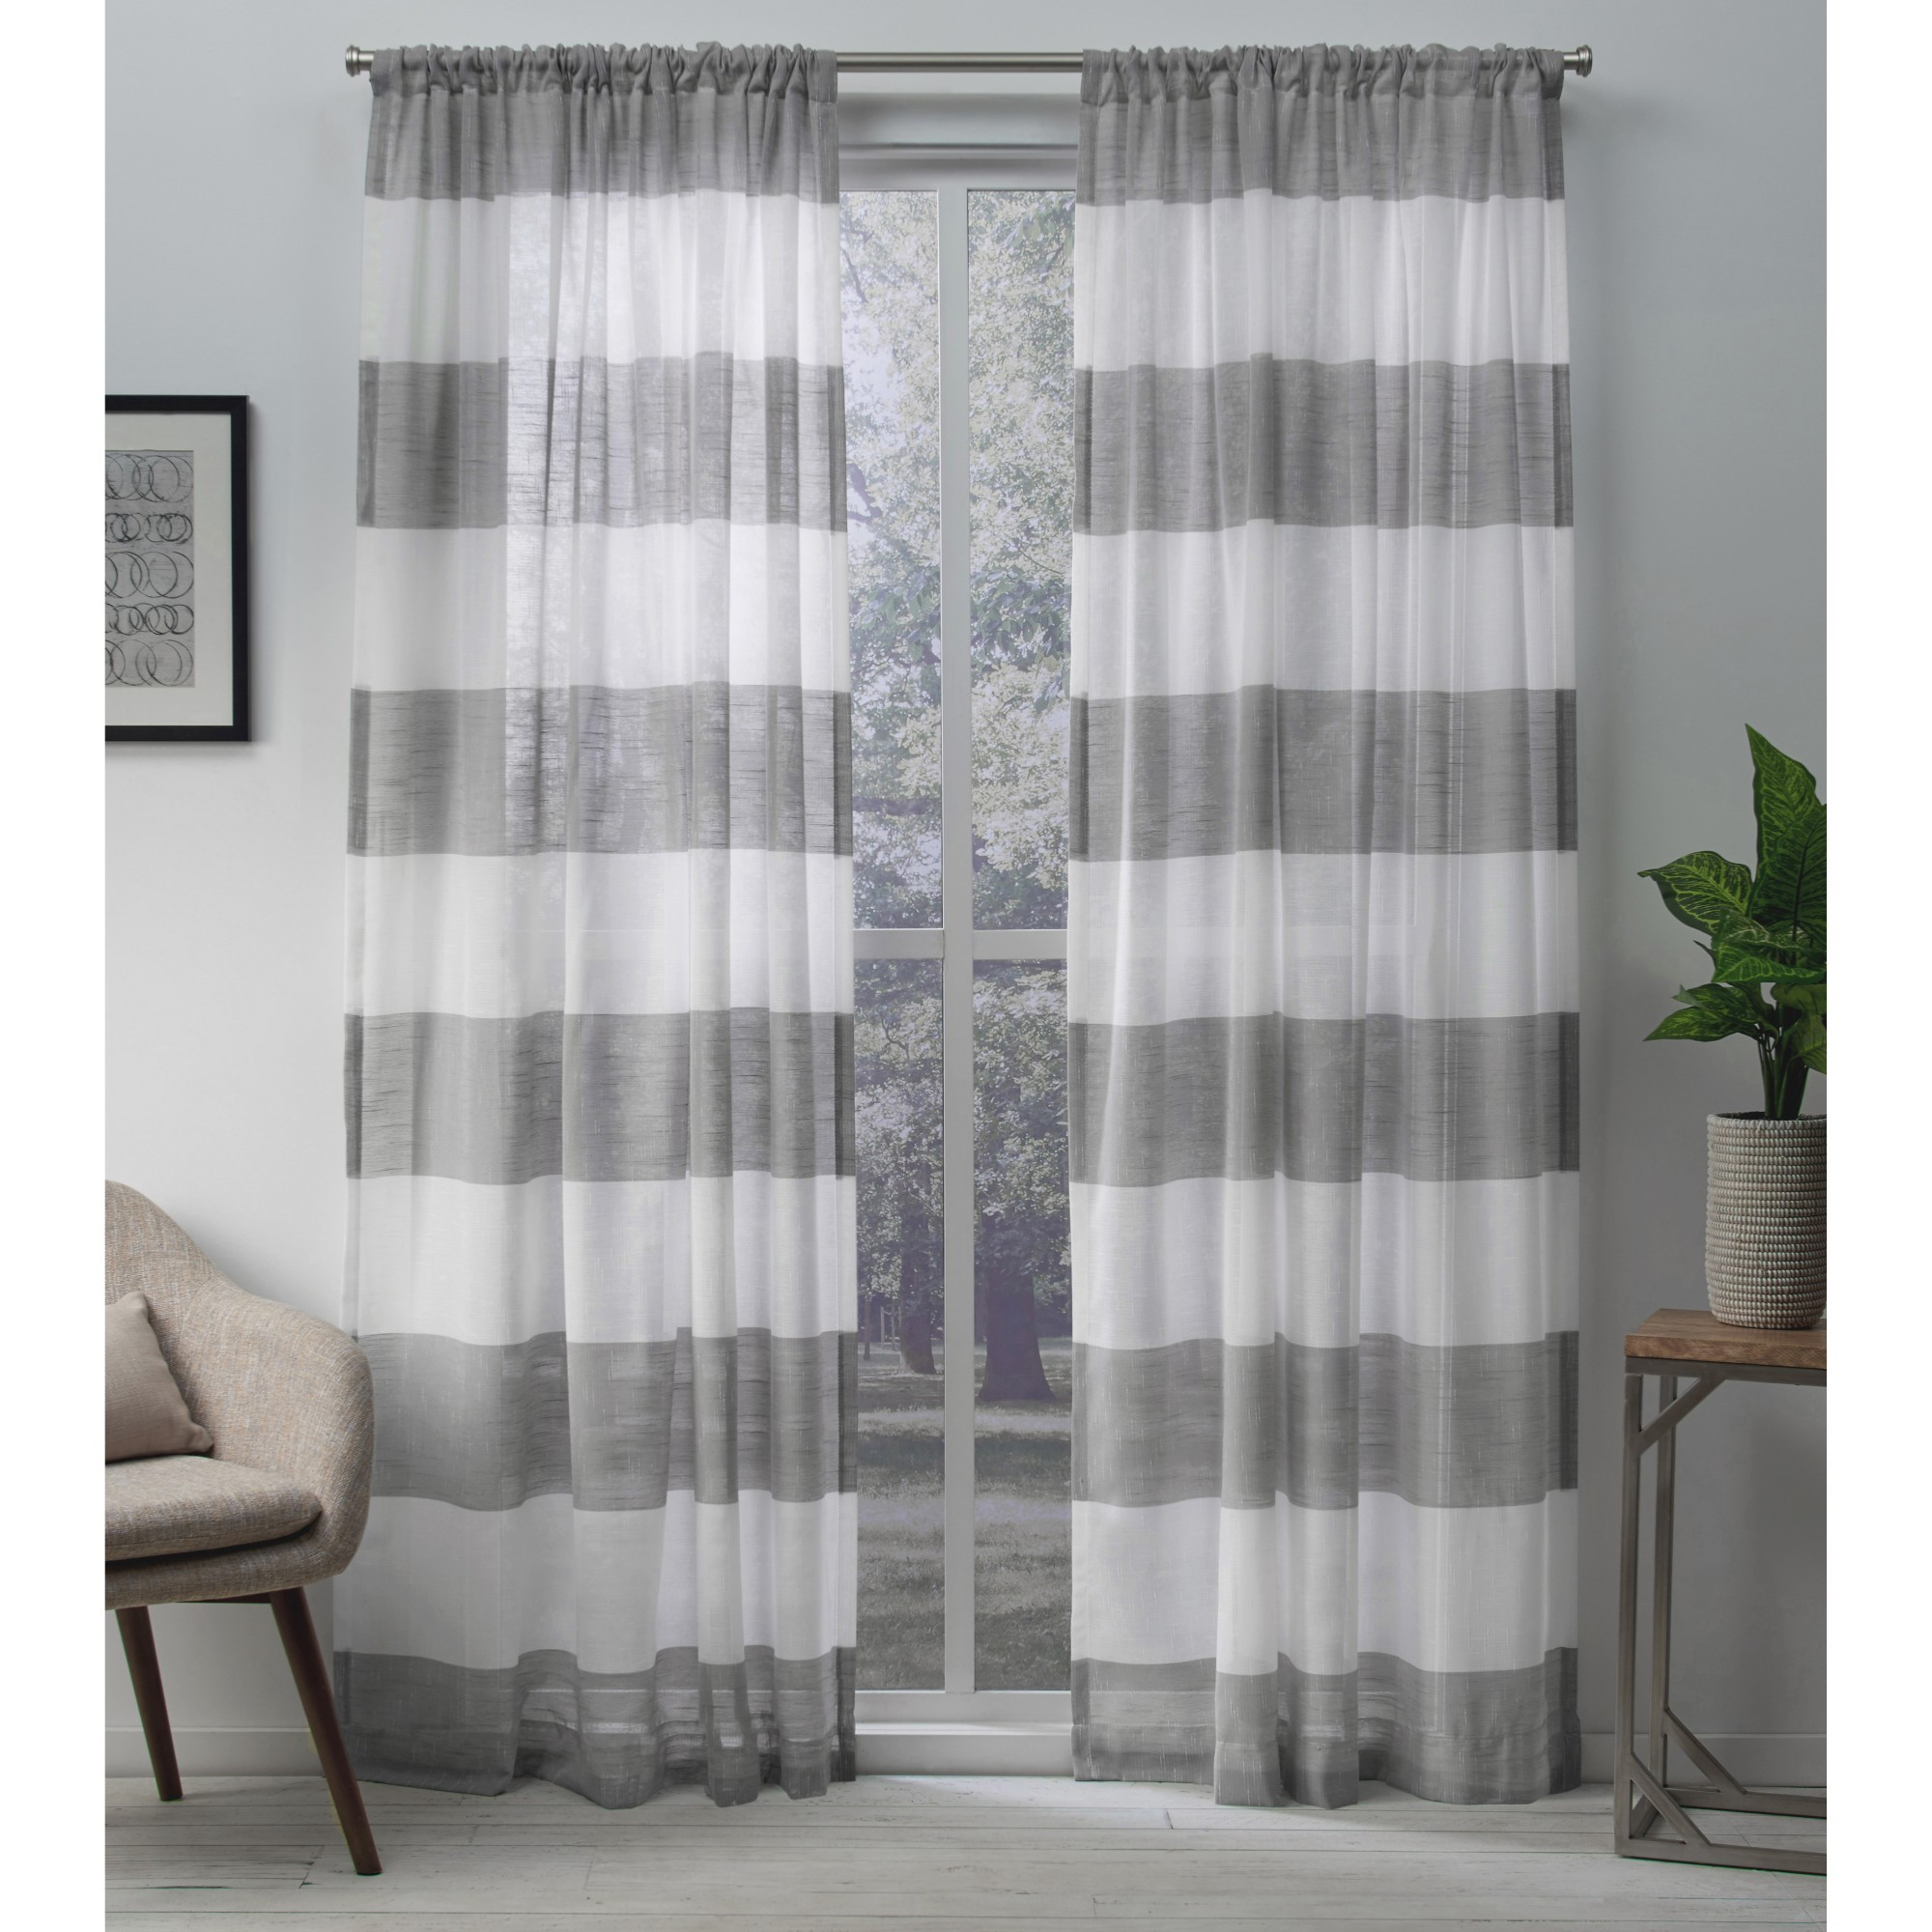 Exclusive Home Darma Sheer Linen Window Curtain Panel Pair with Rod Pocket